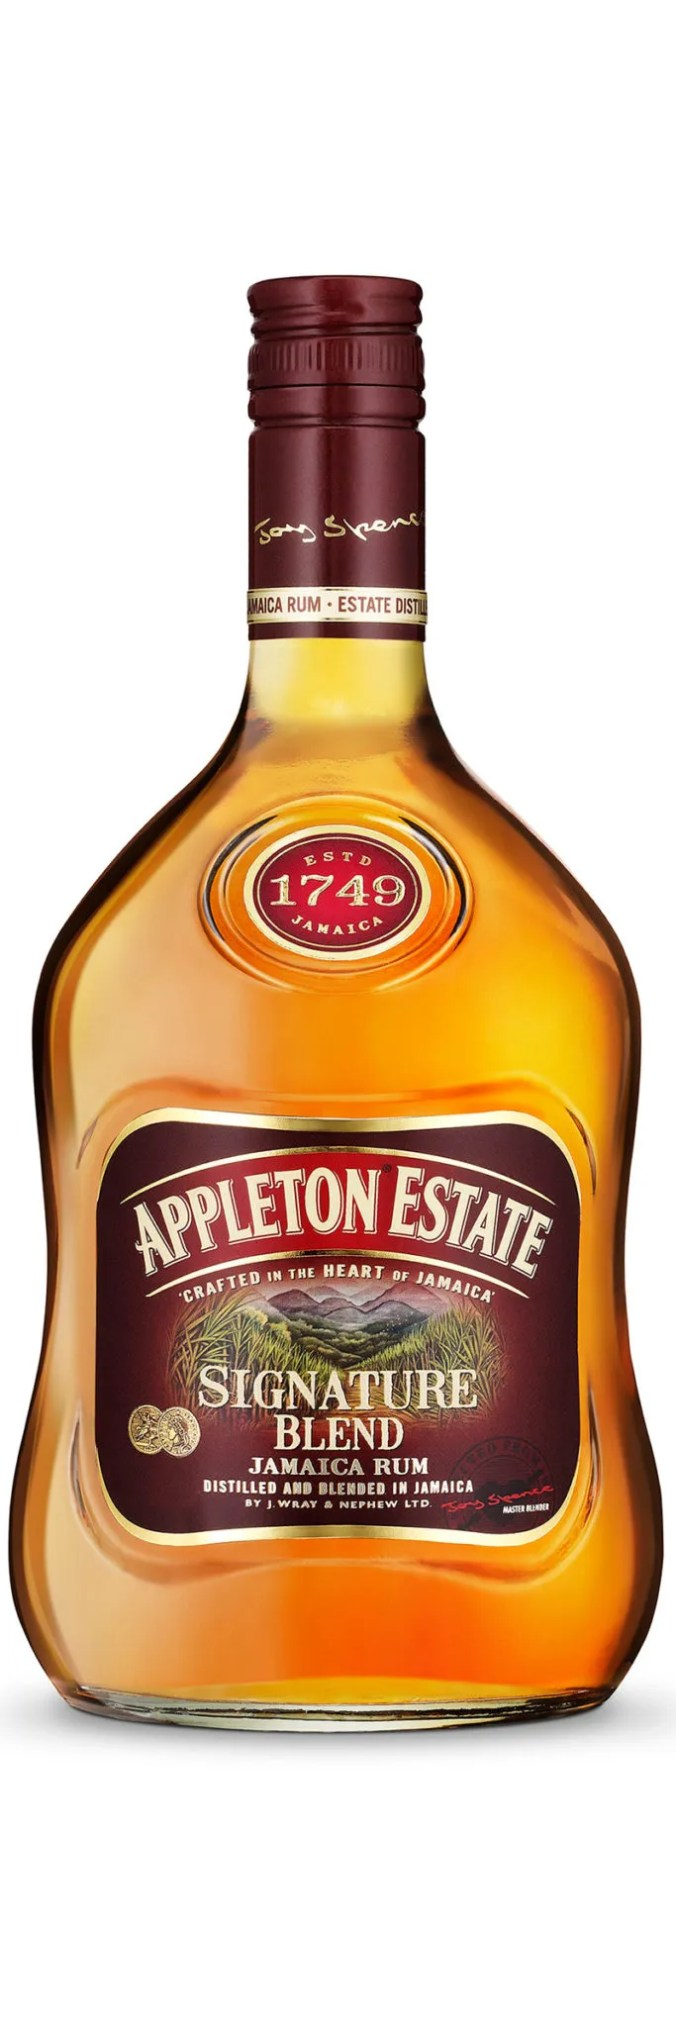 Appleton Estate Reserve Blend is a masterful expression that combines 22 different marques of aged rum, including both pot still and column still variation aged in various barrels for eight to twelve years.